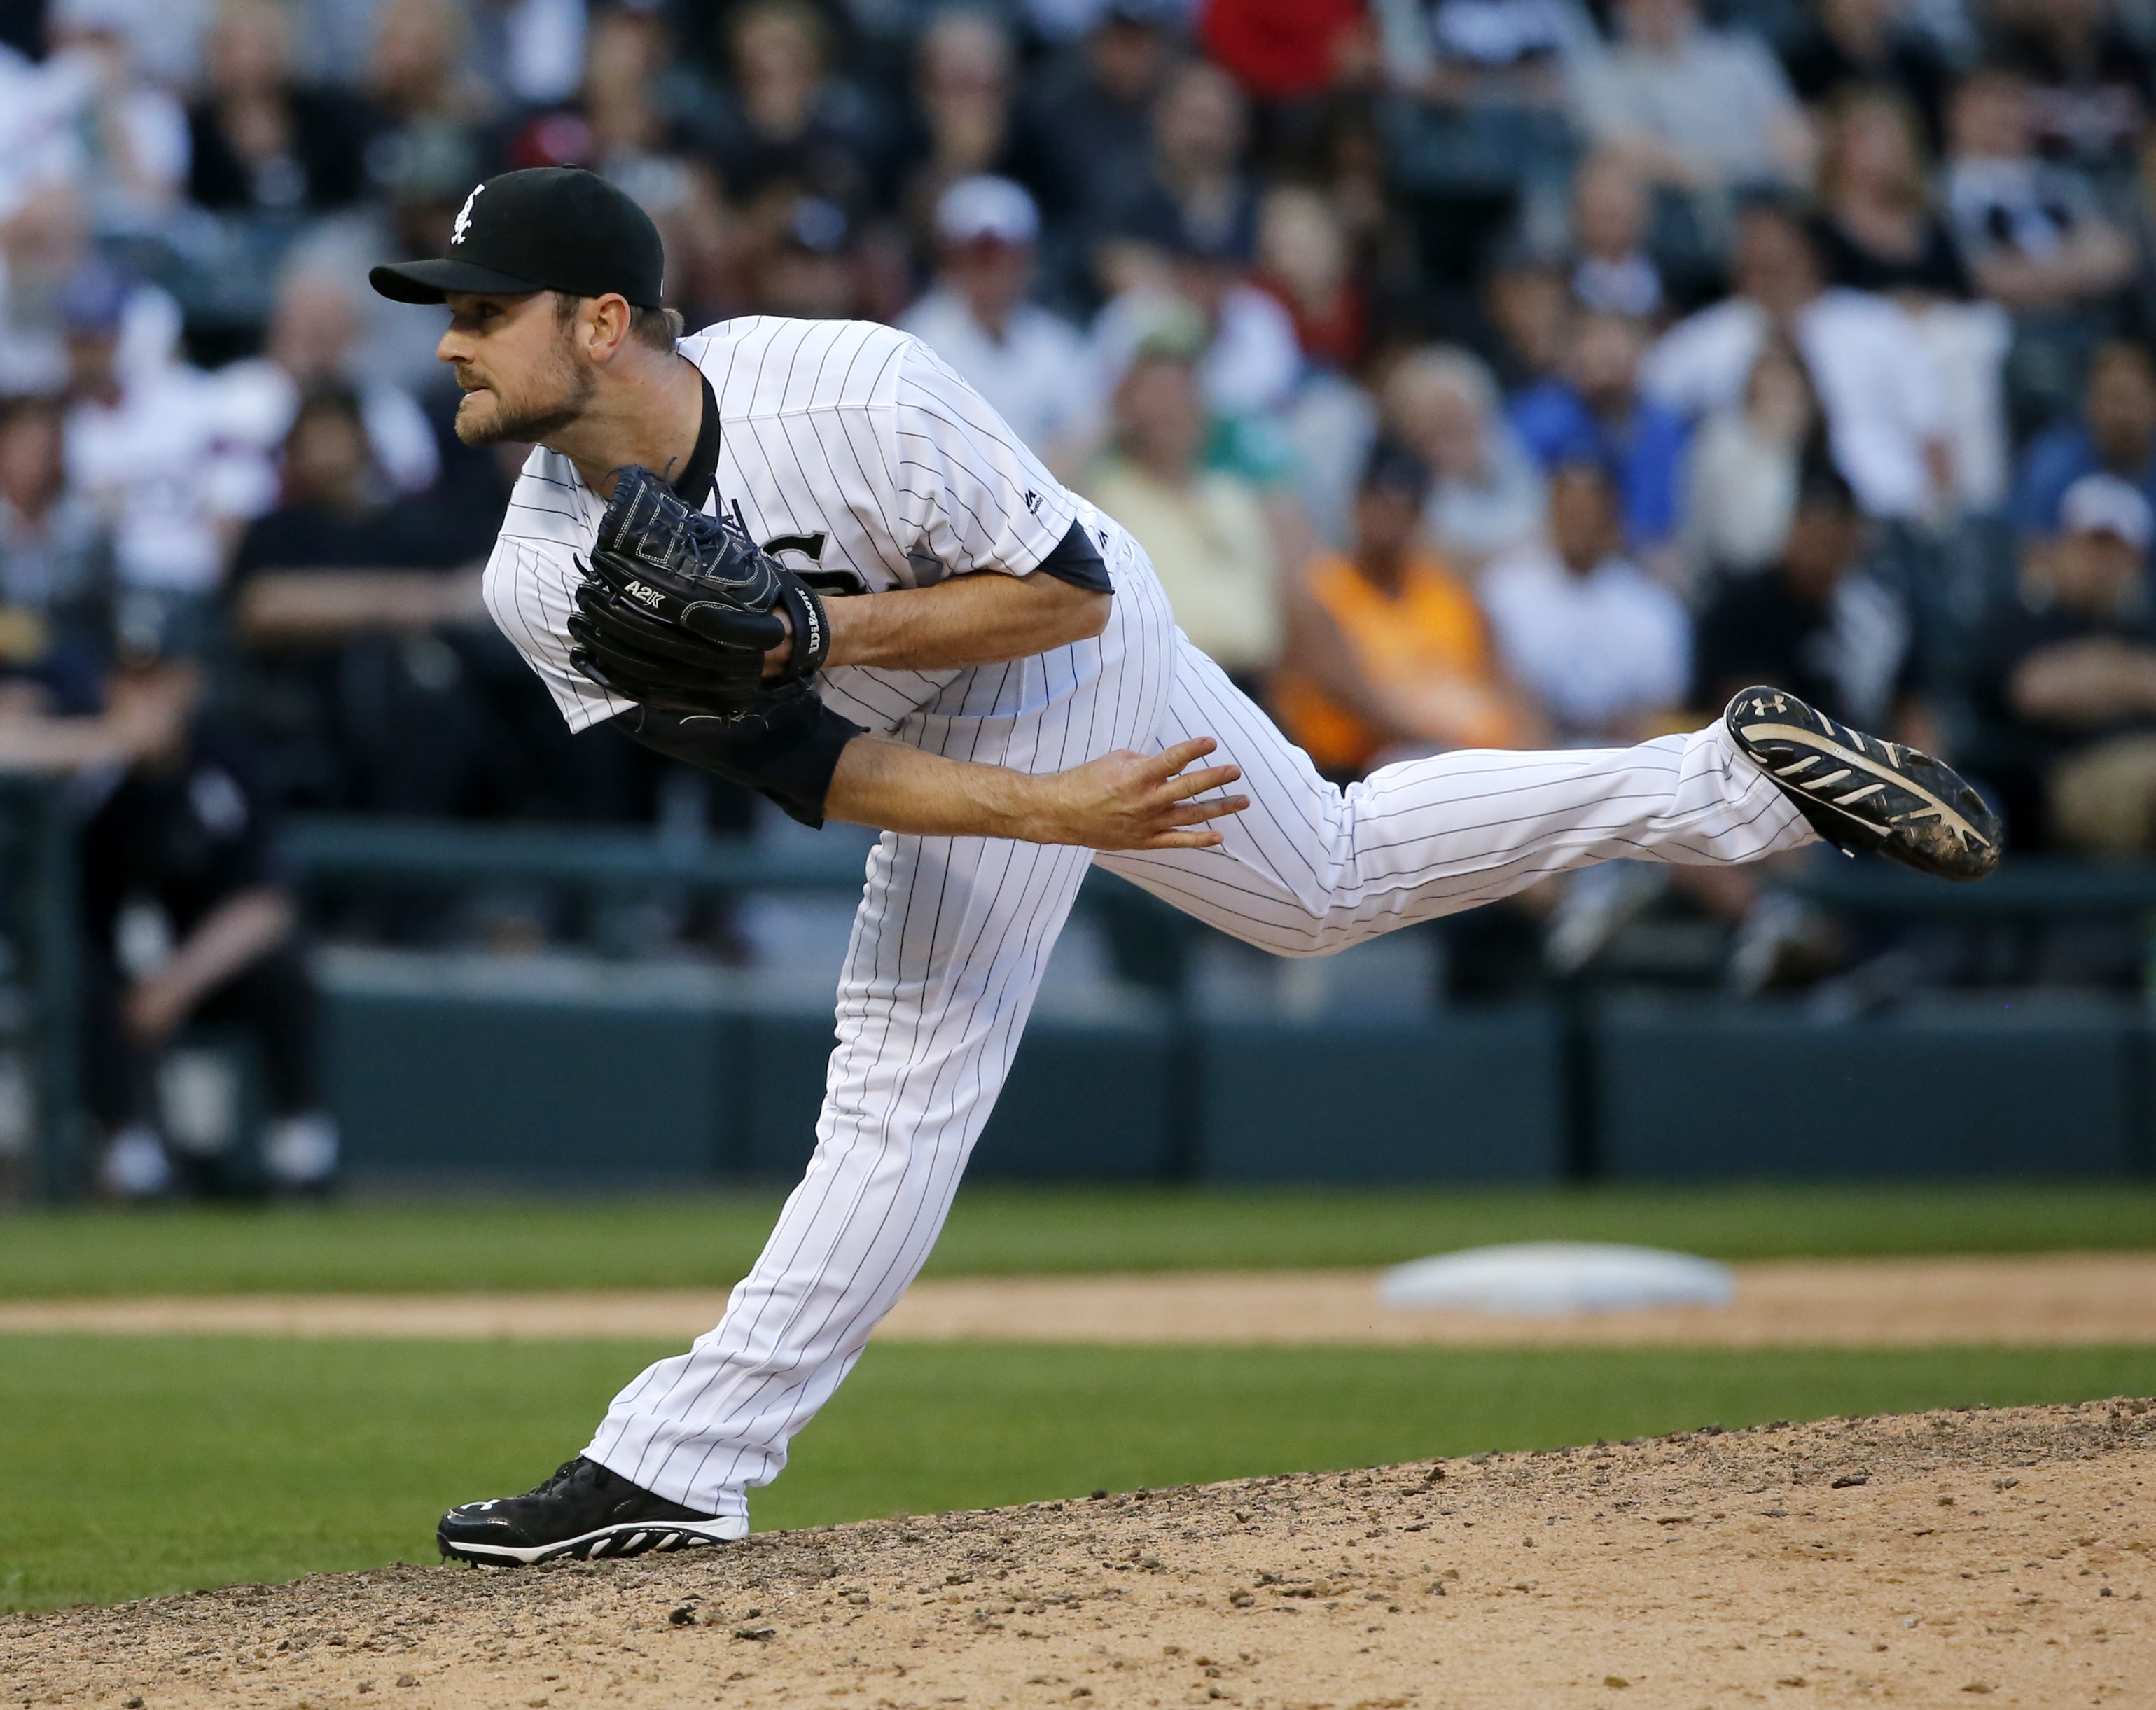 Chicago White Sox relief pitcher David Robertson follows through with a pitch during the ninth inning of a baseball game and the White Sox's 7-6 win over the Cleveland Indians Monday, May 23, 2016, in Chicago. (AP Photo/Charles Rex Arbogast)